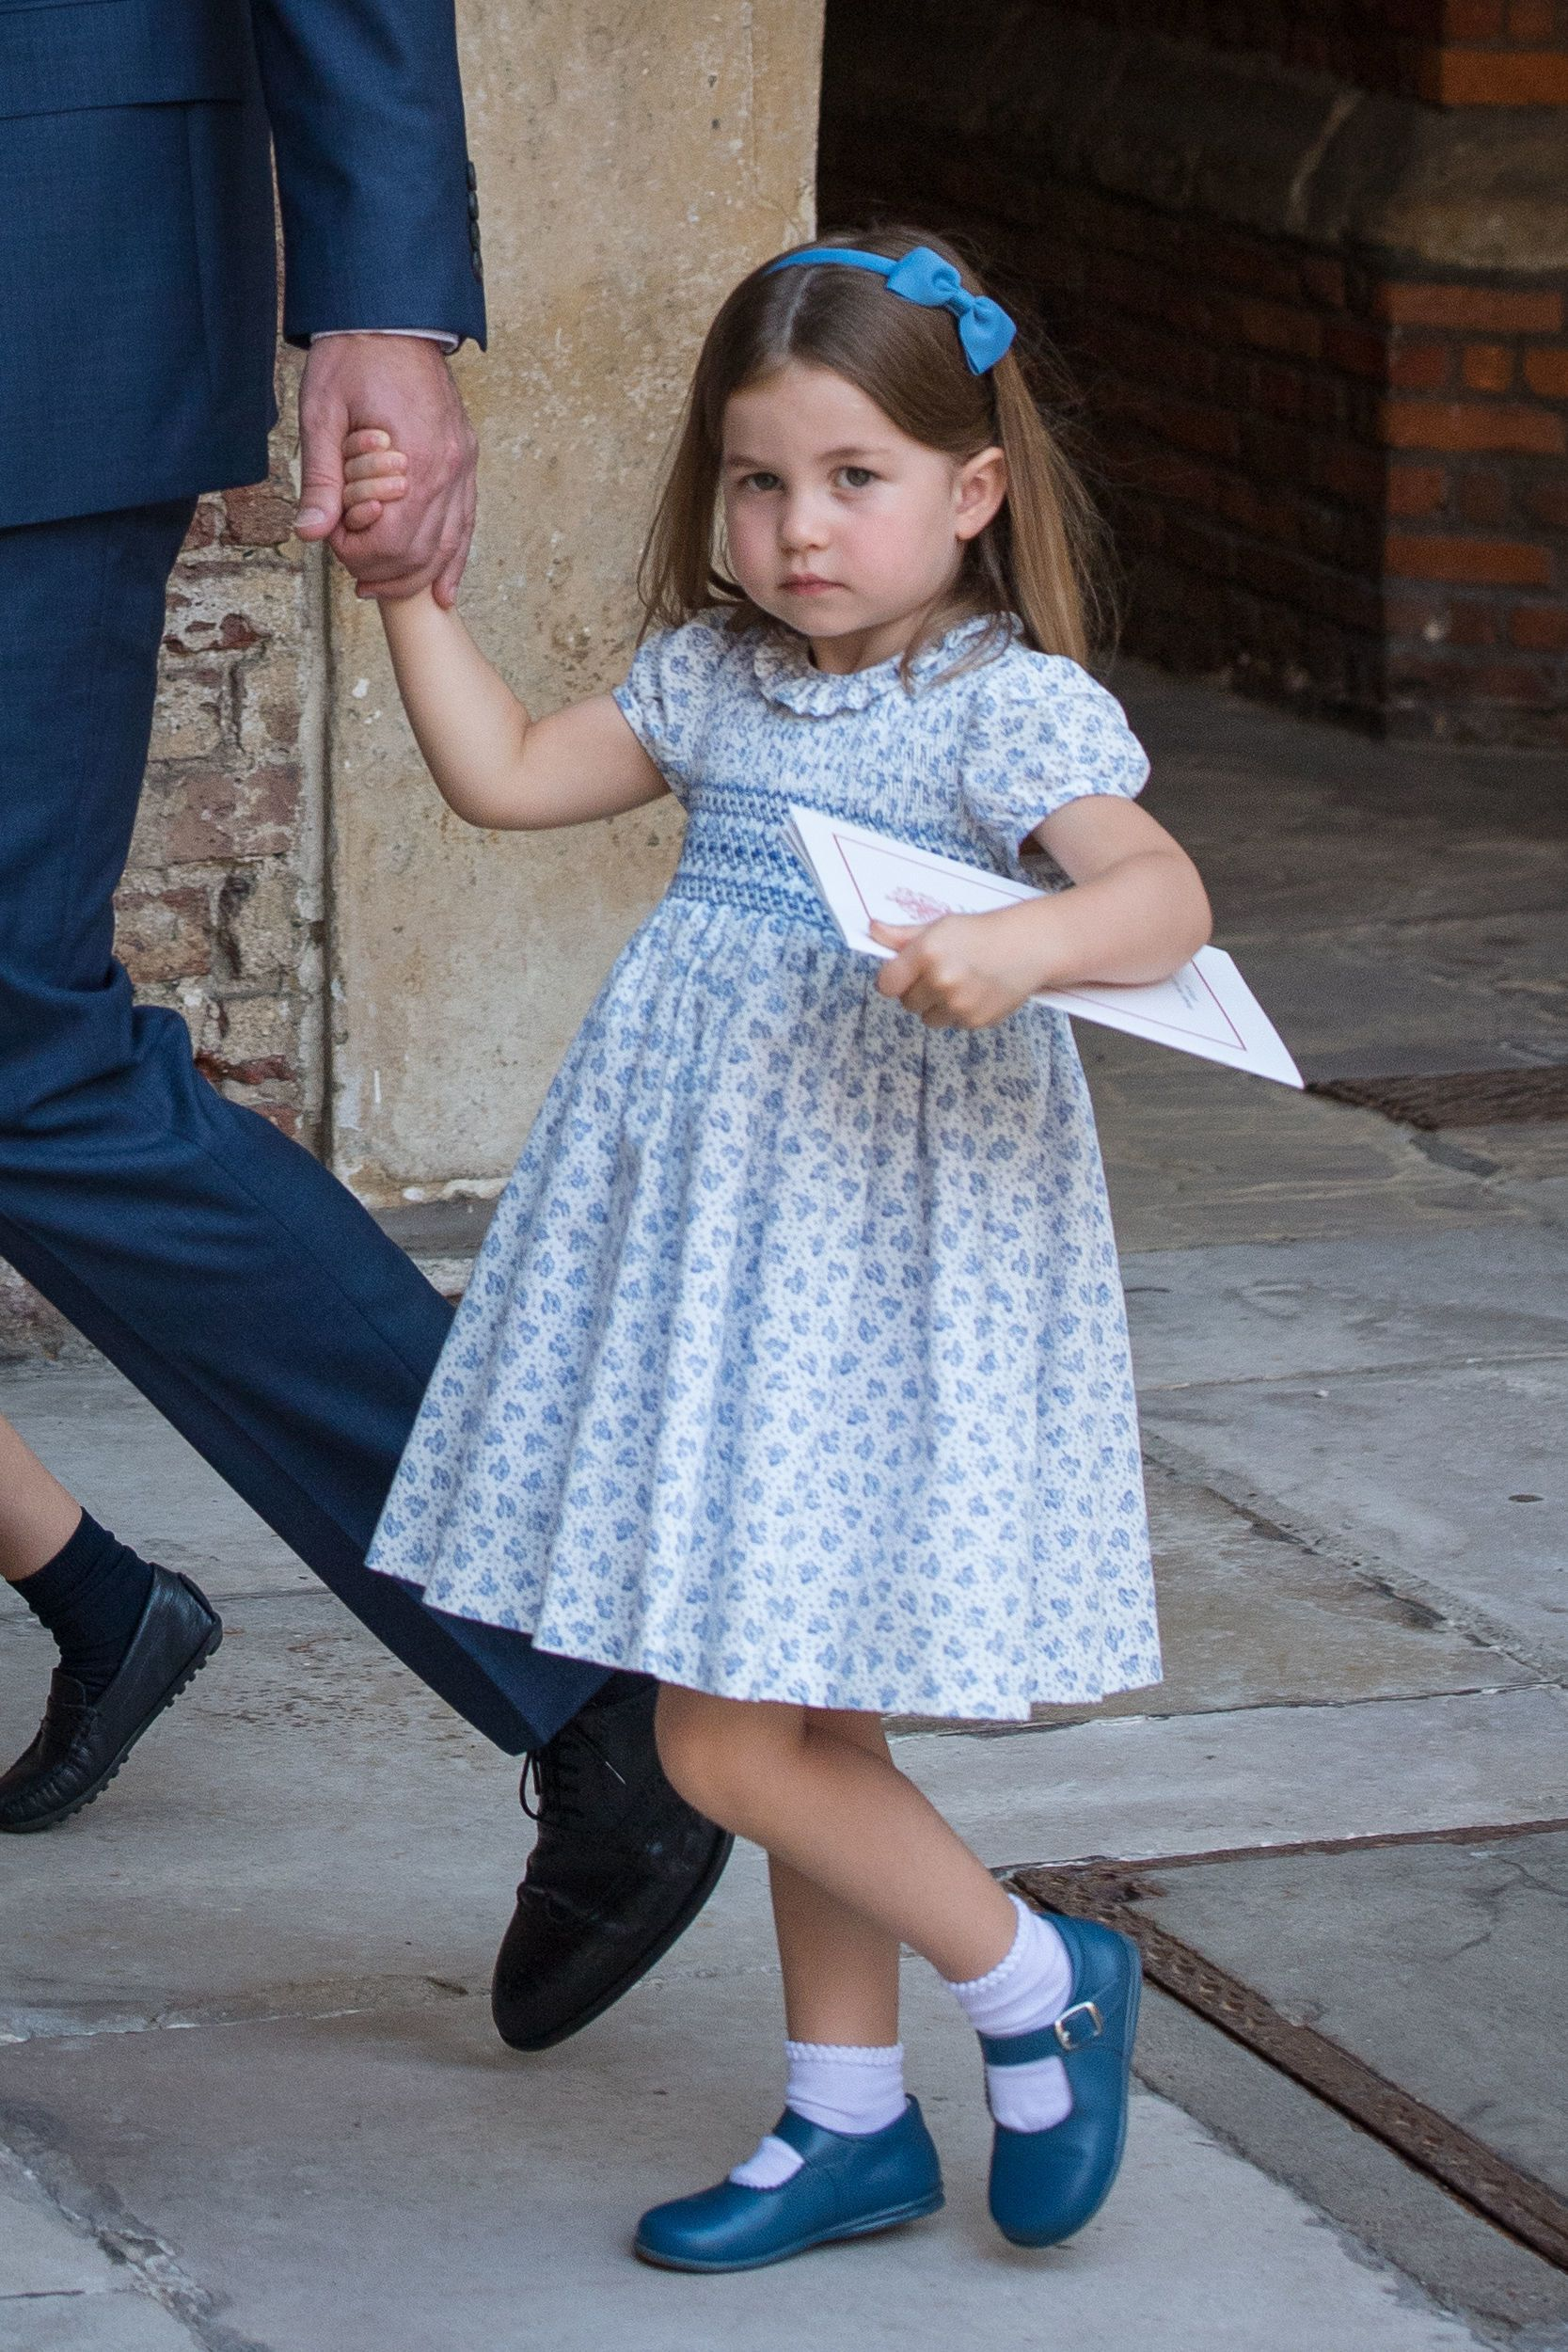 Princess Charlotte's Sassy Comment To Photographer Is A Brilliant Reminder Of Kids' Lack Of